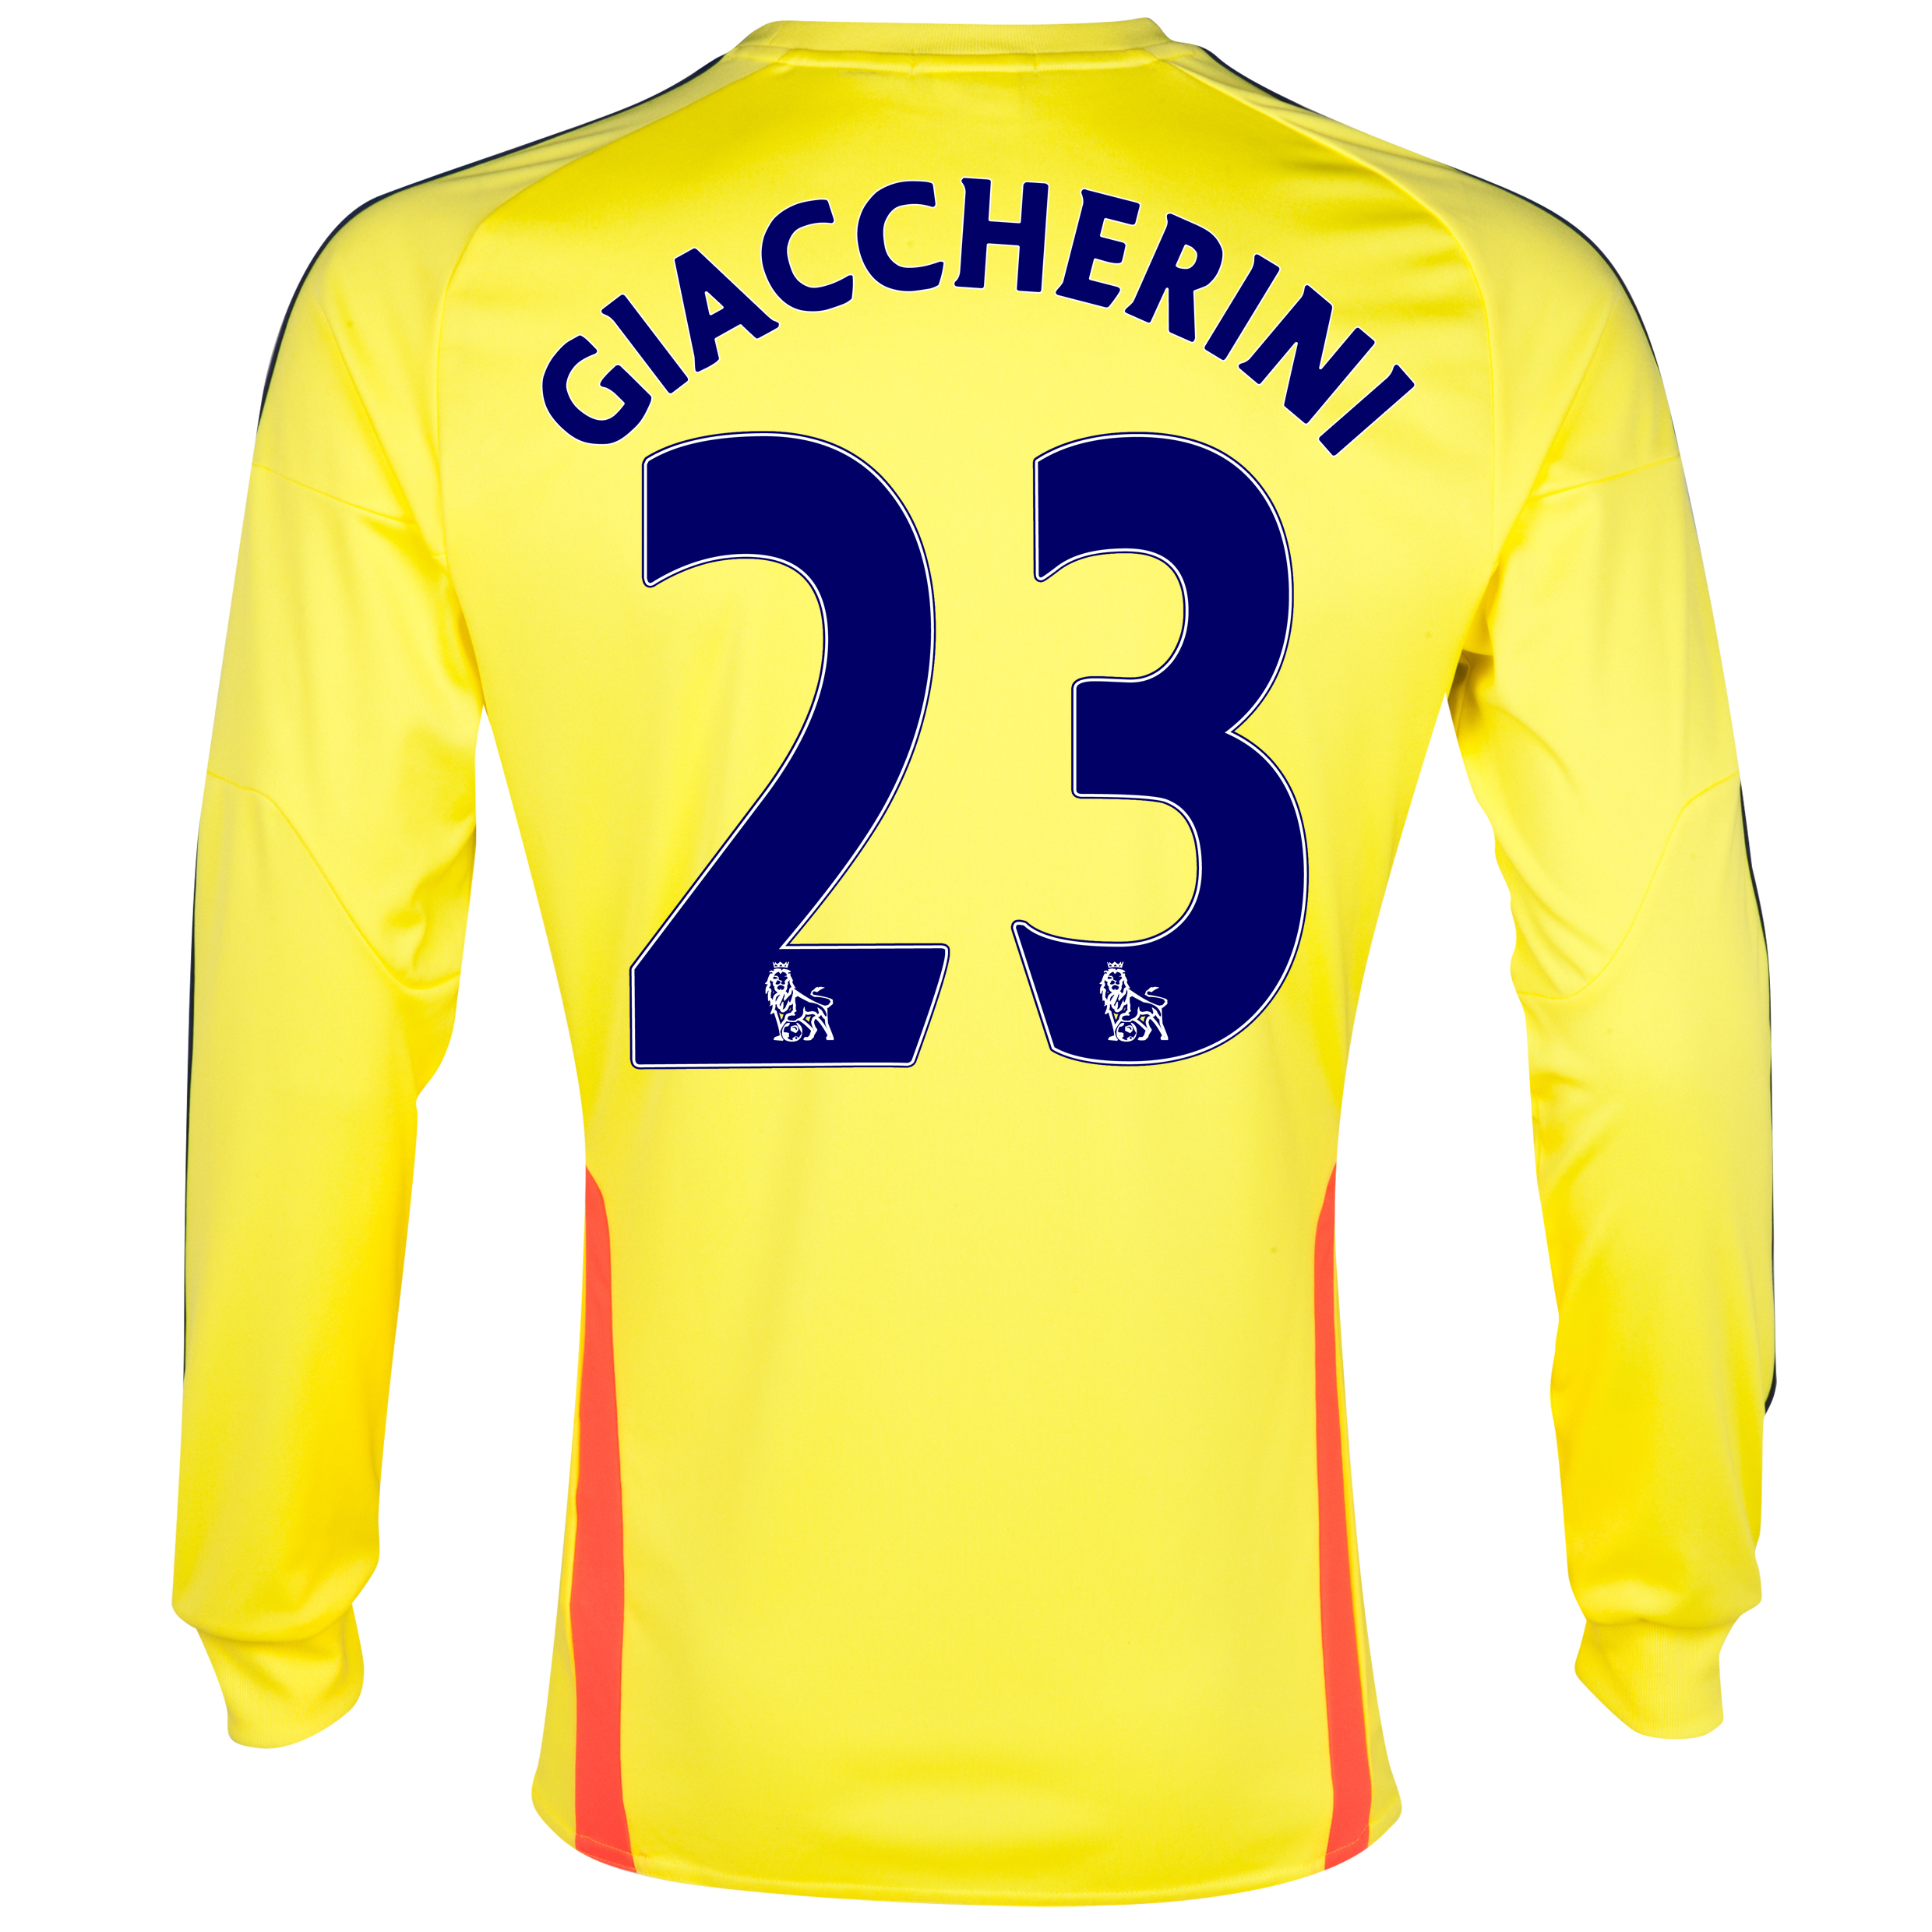 Sunderland Away Shirt 2013/14 - Long Sleeved with Giaccherini 23 printing